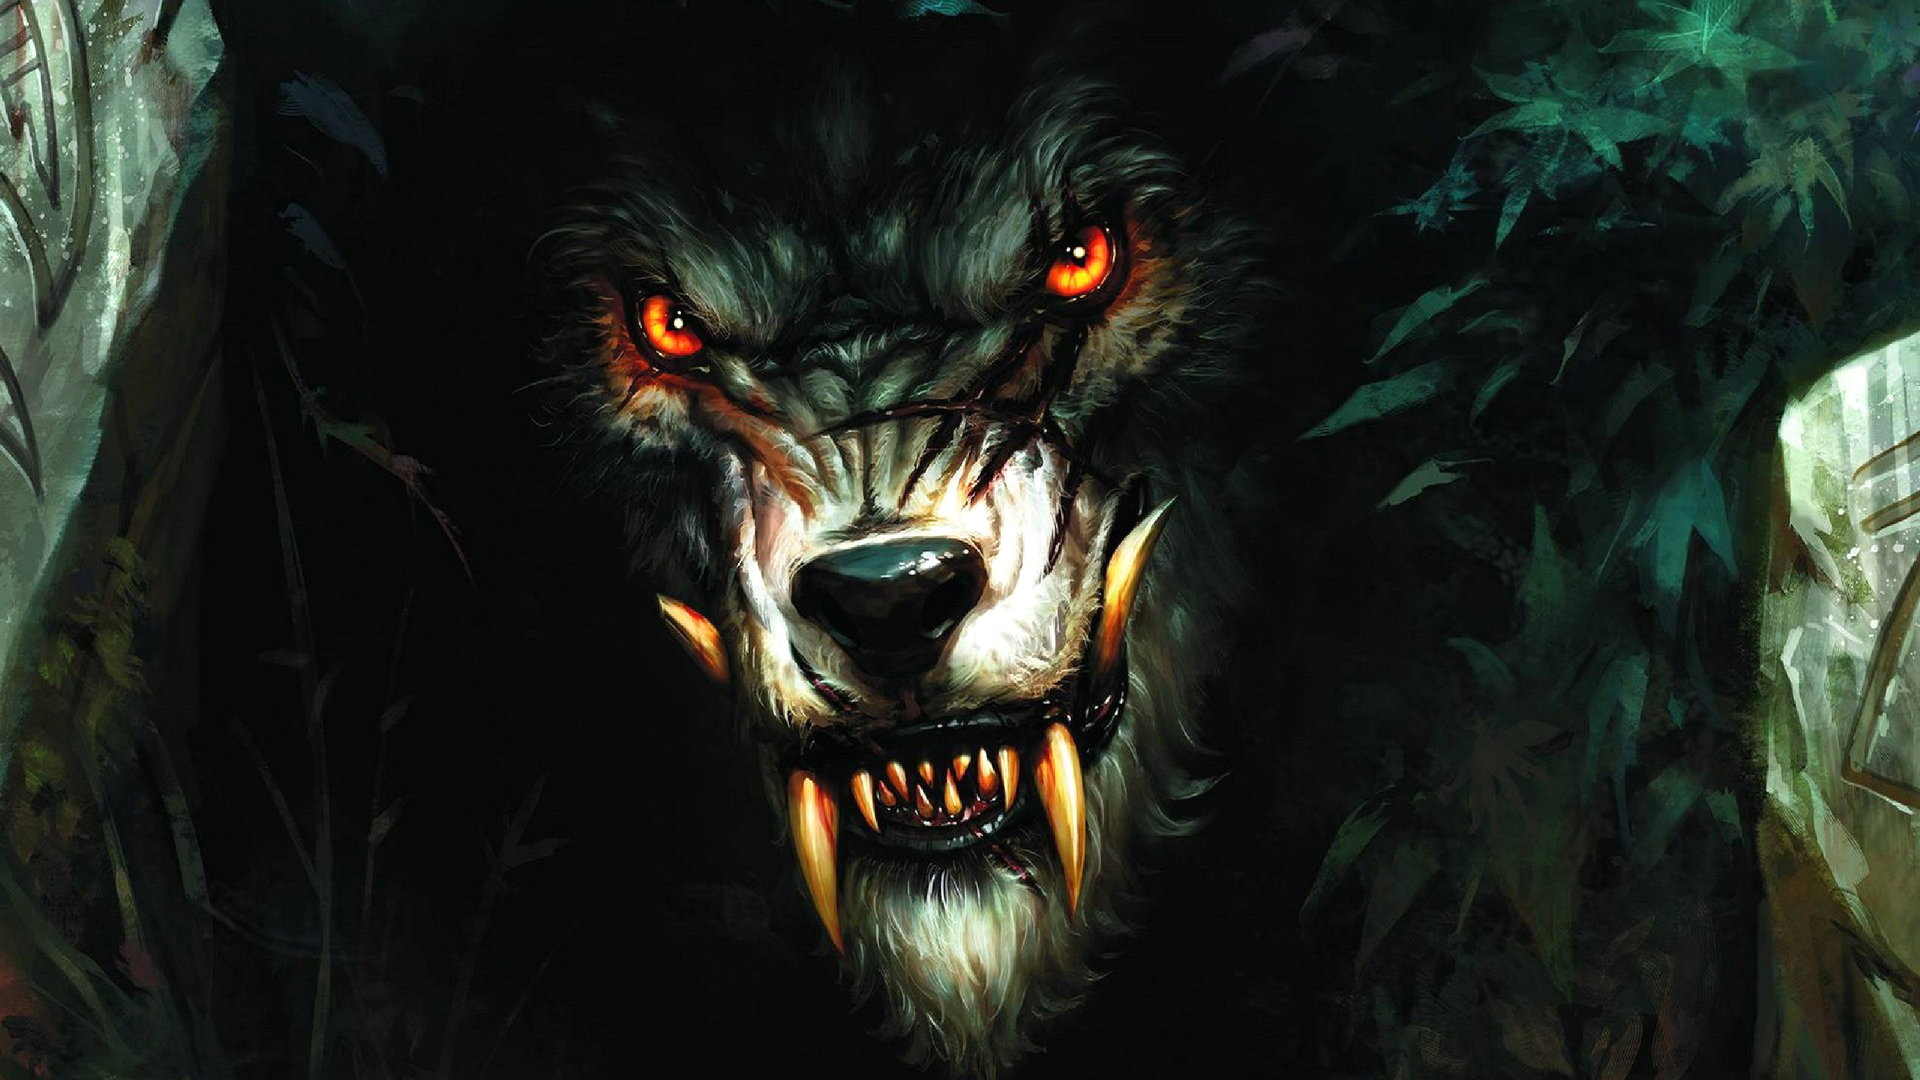 Download hd 1920x1080 Werewolf computer wallpaper ID:163734 for free